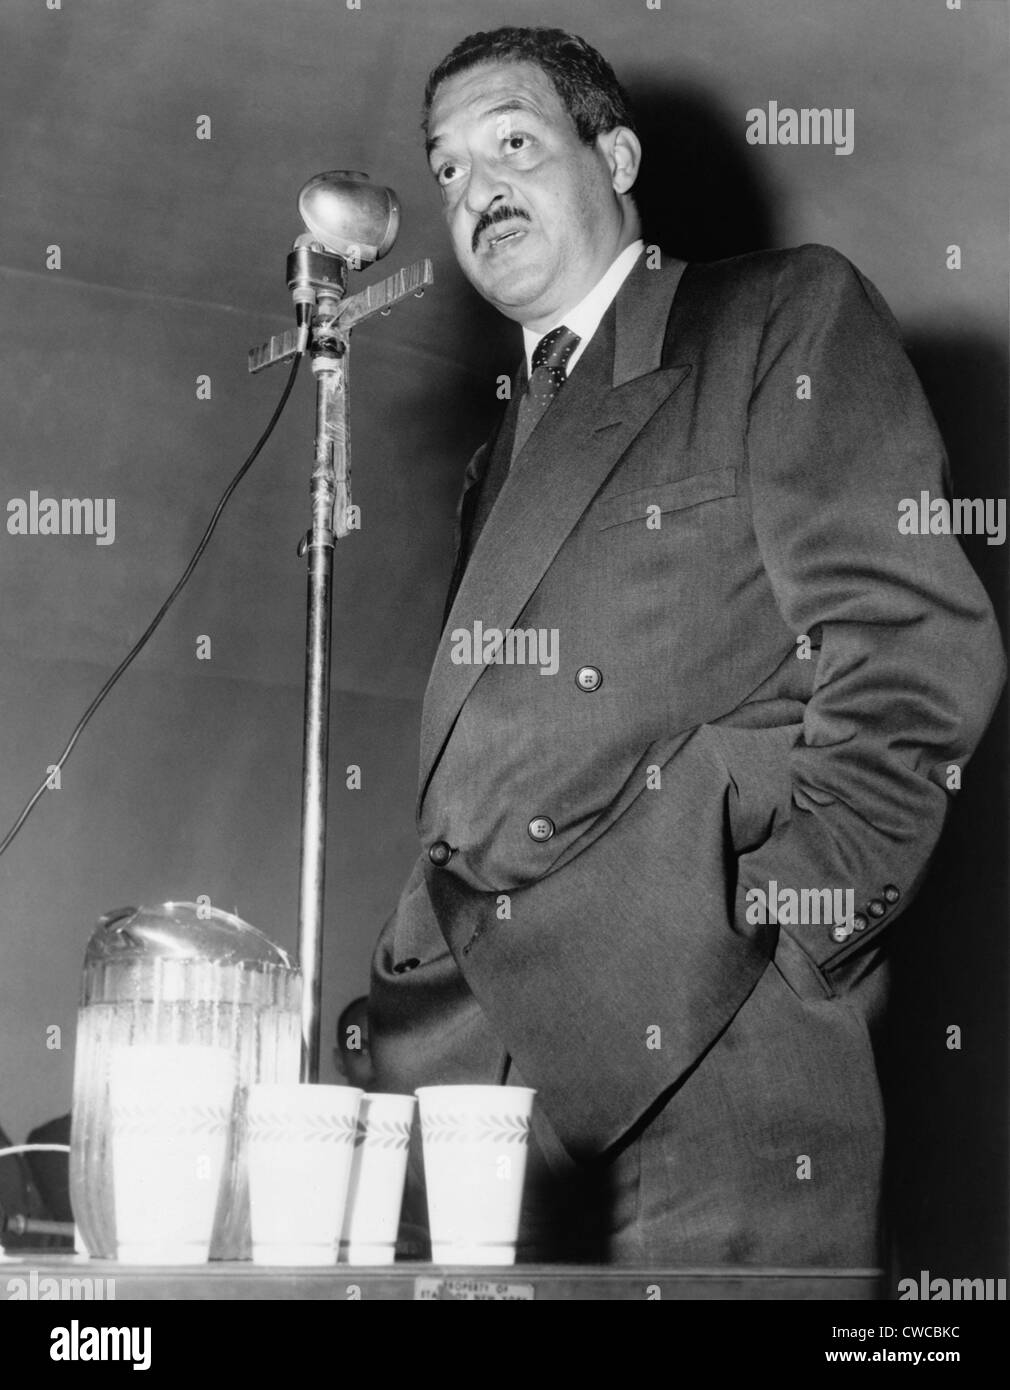 Thurgood Marshall, then Chief Counsel for the NAACP, speaking at the reunion of the 369th Veterans' Association. - Stock Image